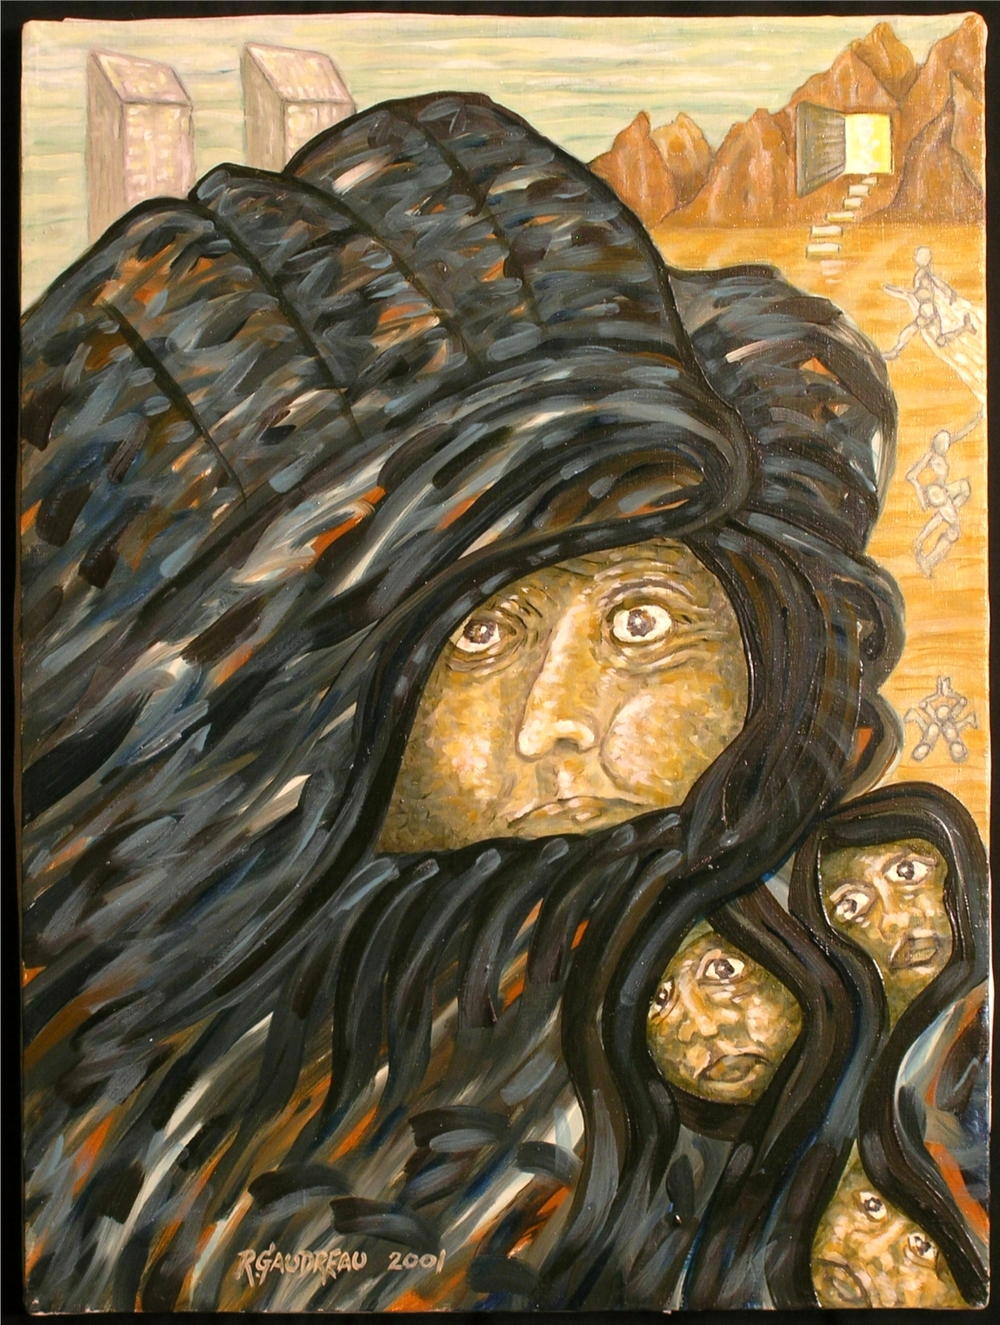 Afghanistan Mother  2001 oil on linen 24 x 18 inches